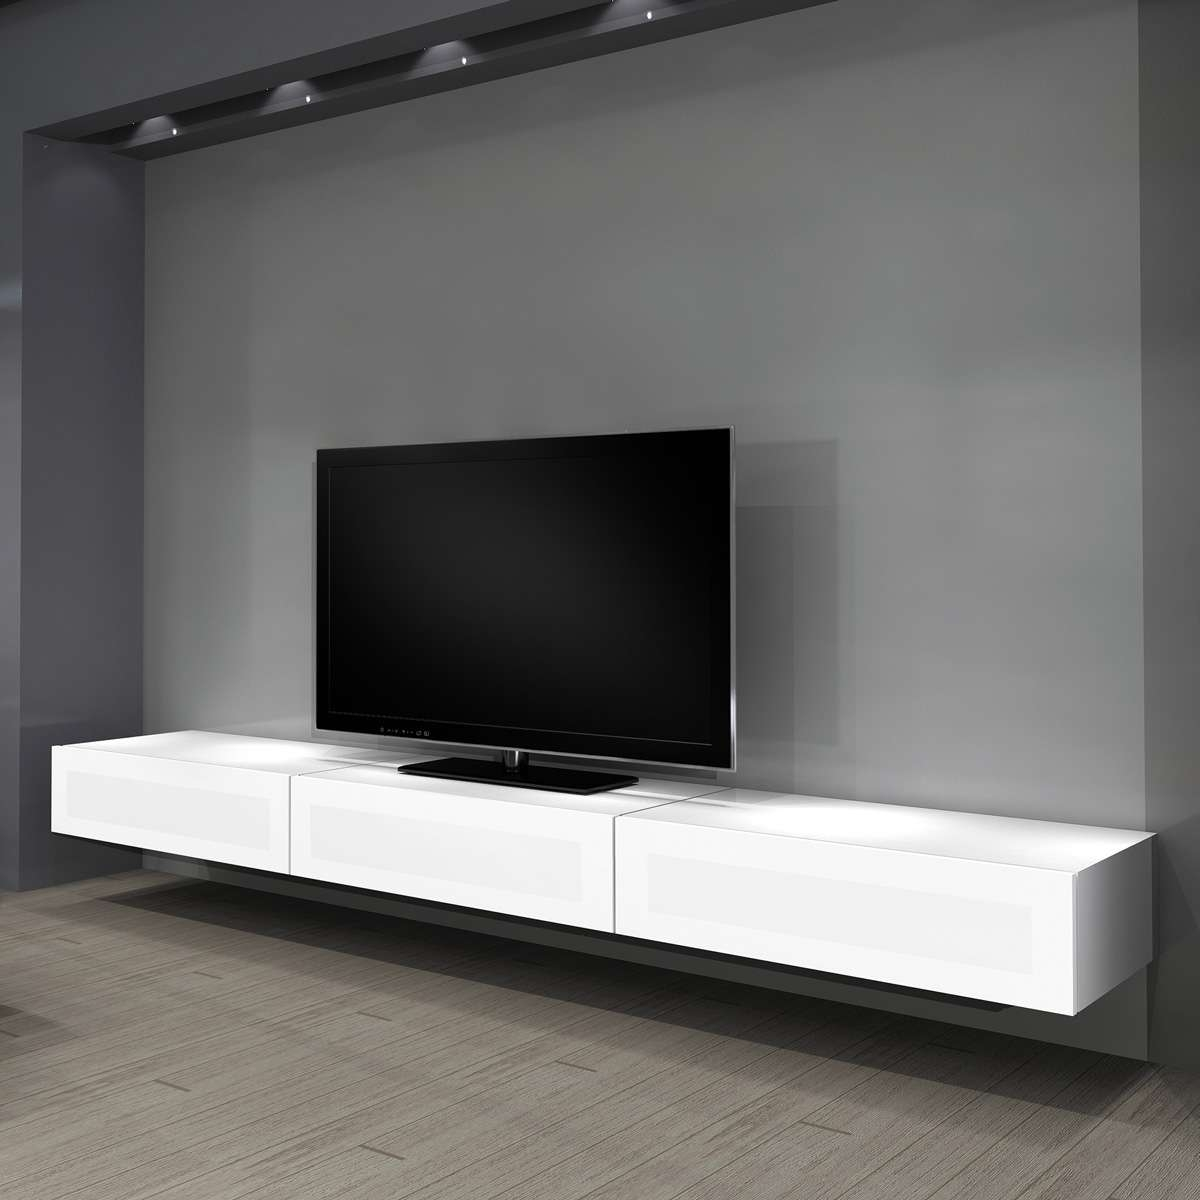 White Wall Mounted Tv Stands Furniture Pinterest Cabinets Black Pertaining To Modern Wall Mount Tv Stands (View 19 of 20)